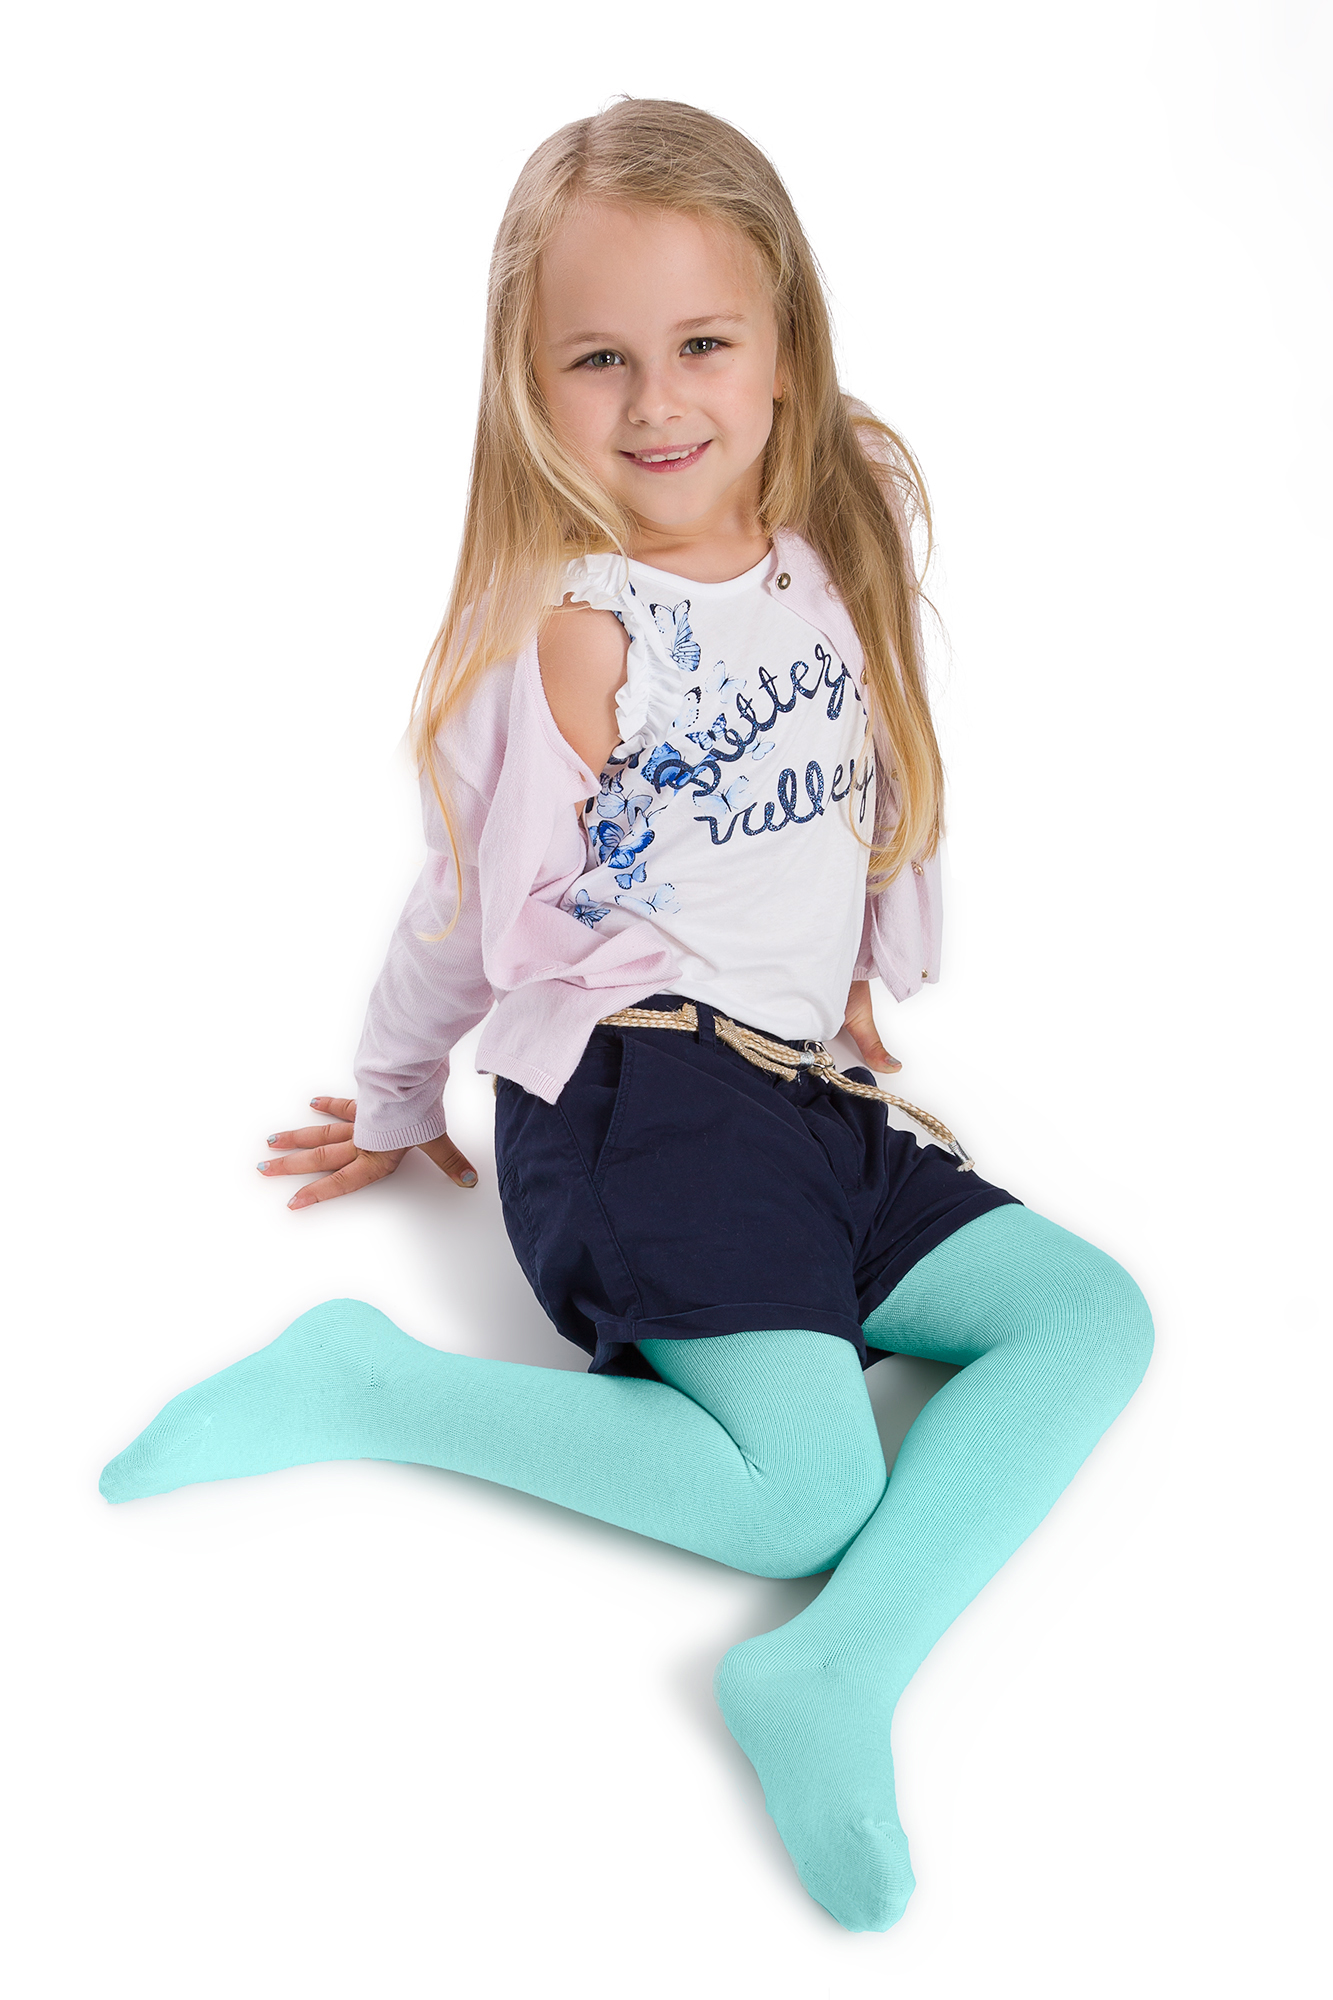 Girls Children Kids Patterned Colourful Cotton Tights Pants Size 2-4 Years